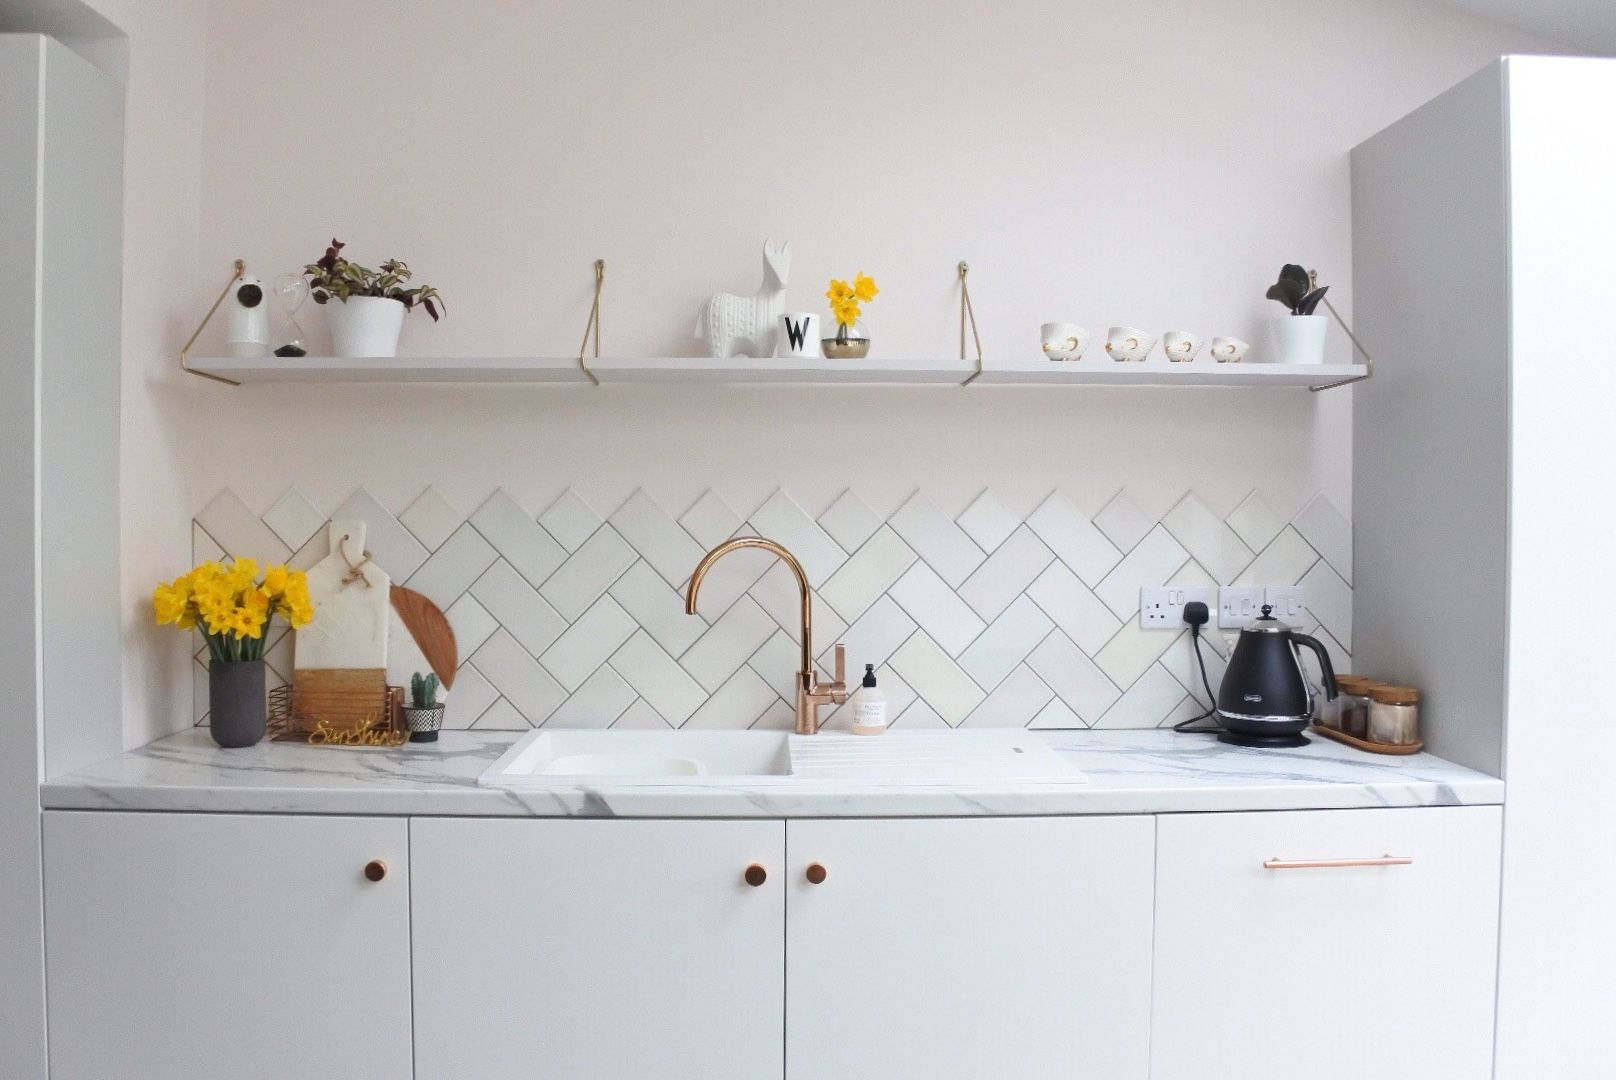 Kitchen inspiration - Valspar's Peaceful Soul on  the walls, beautiful pastel hues on the tiles and open shelves to make everything look pretty.